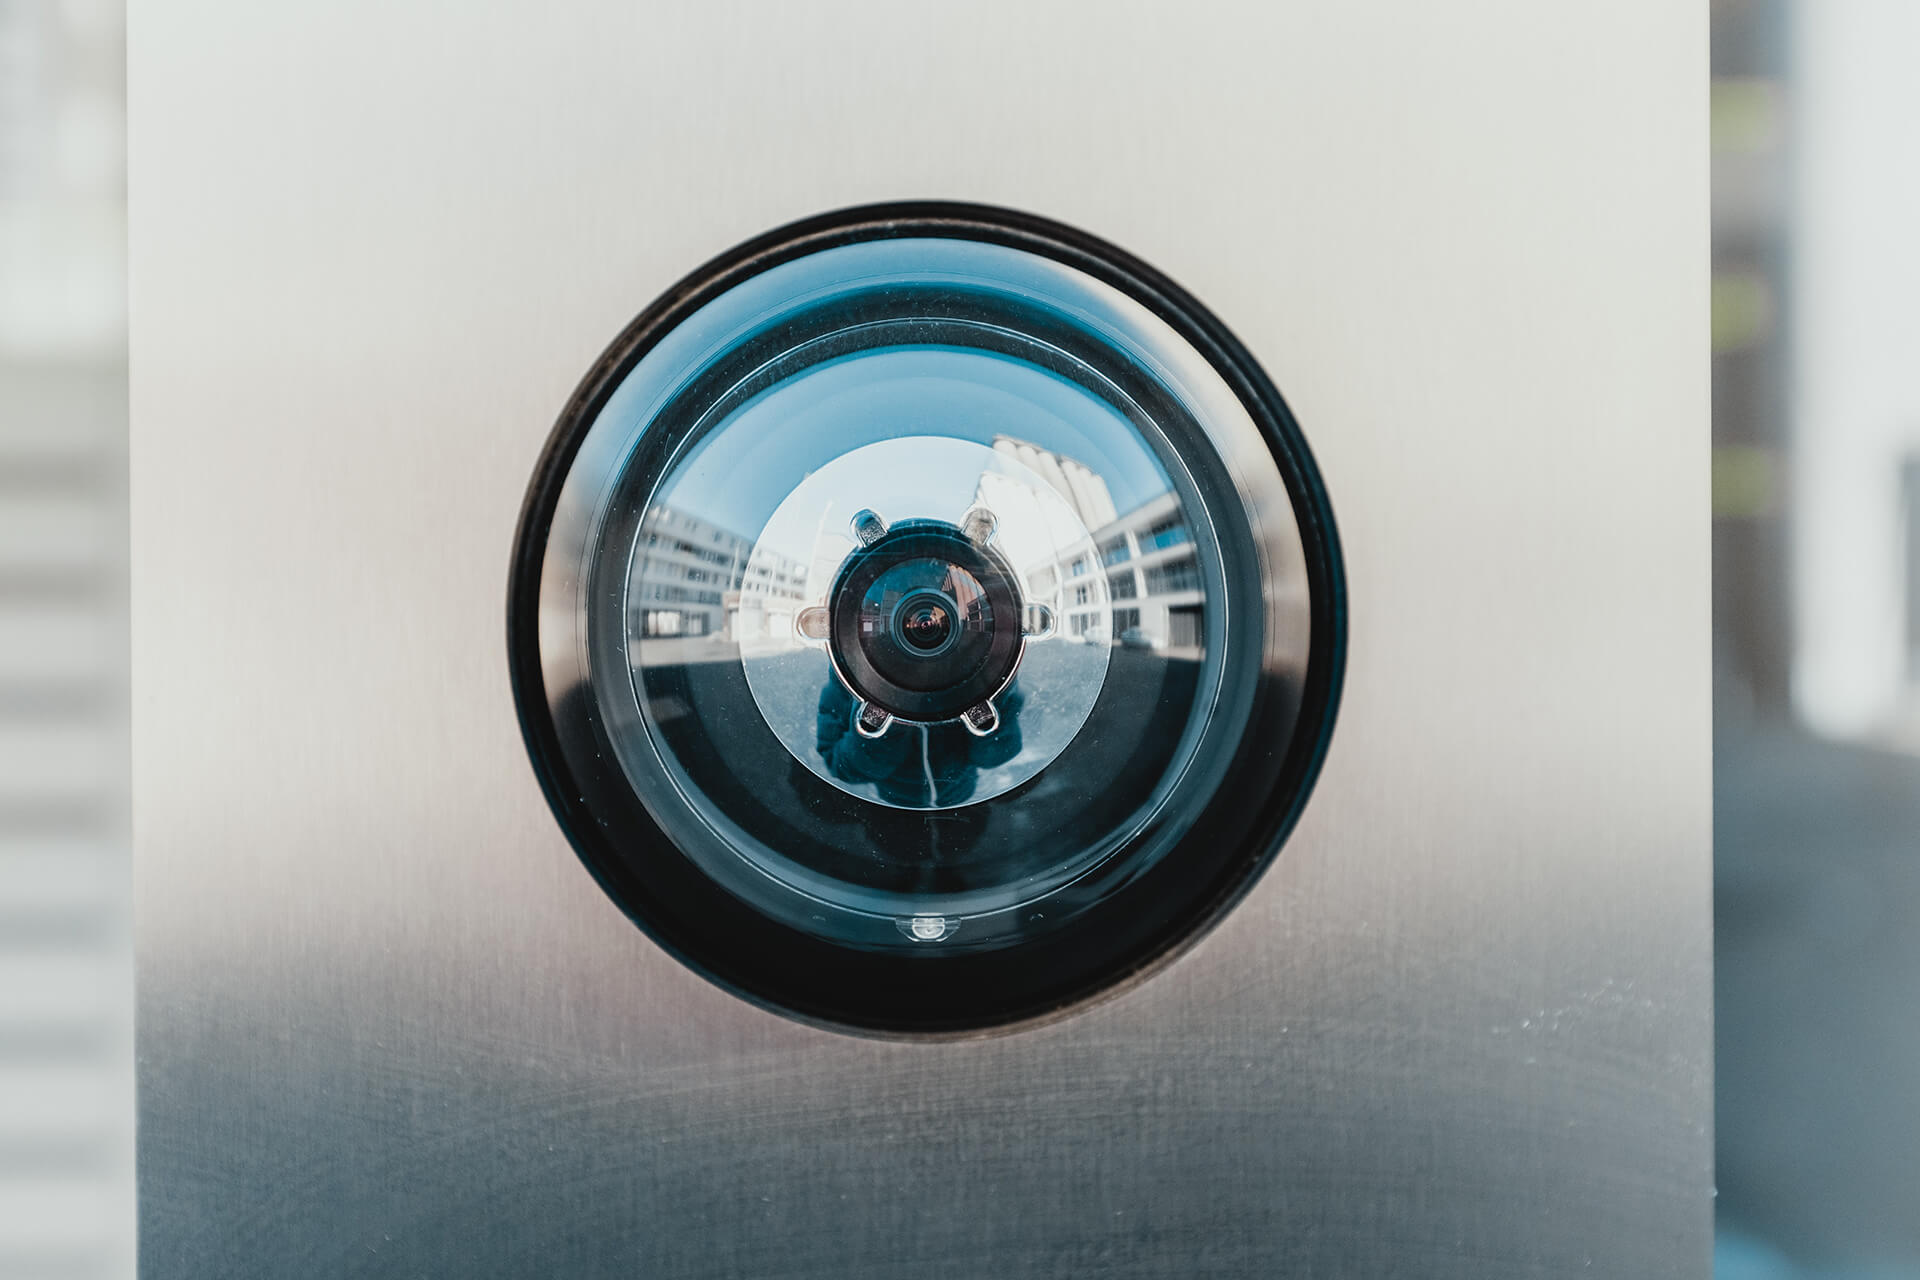 A circular security camera mounted on a wall